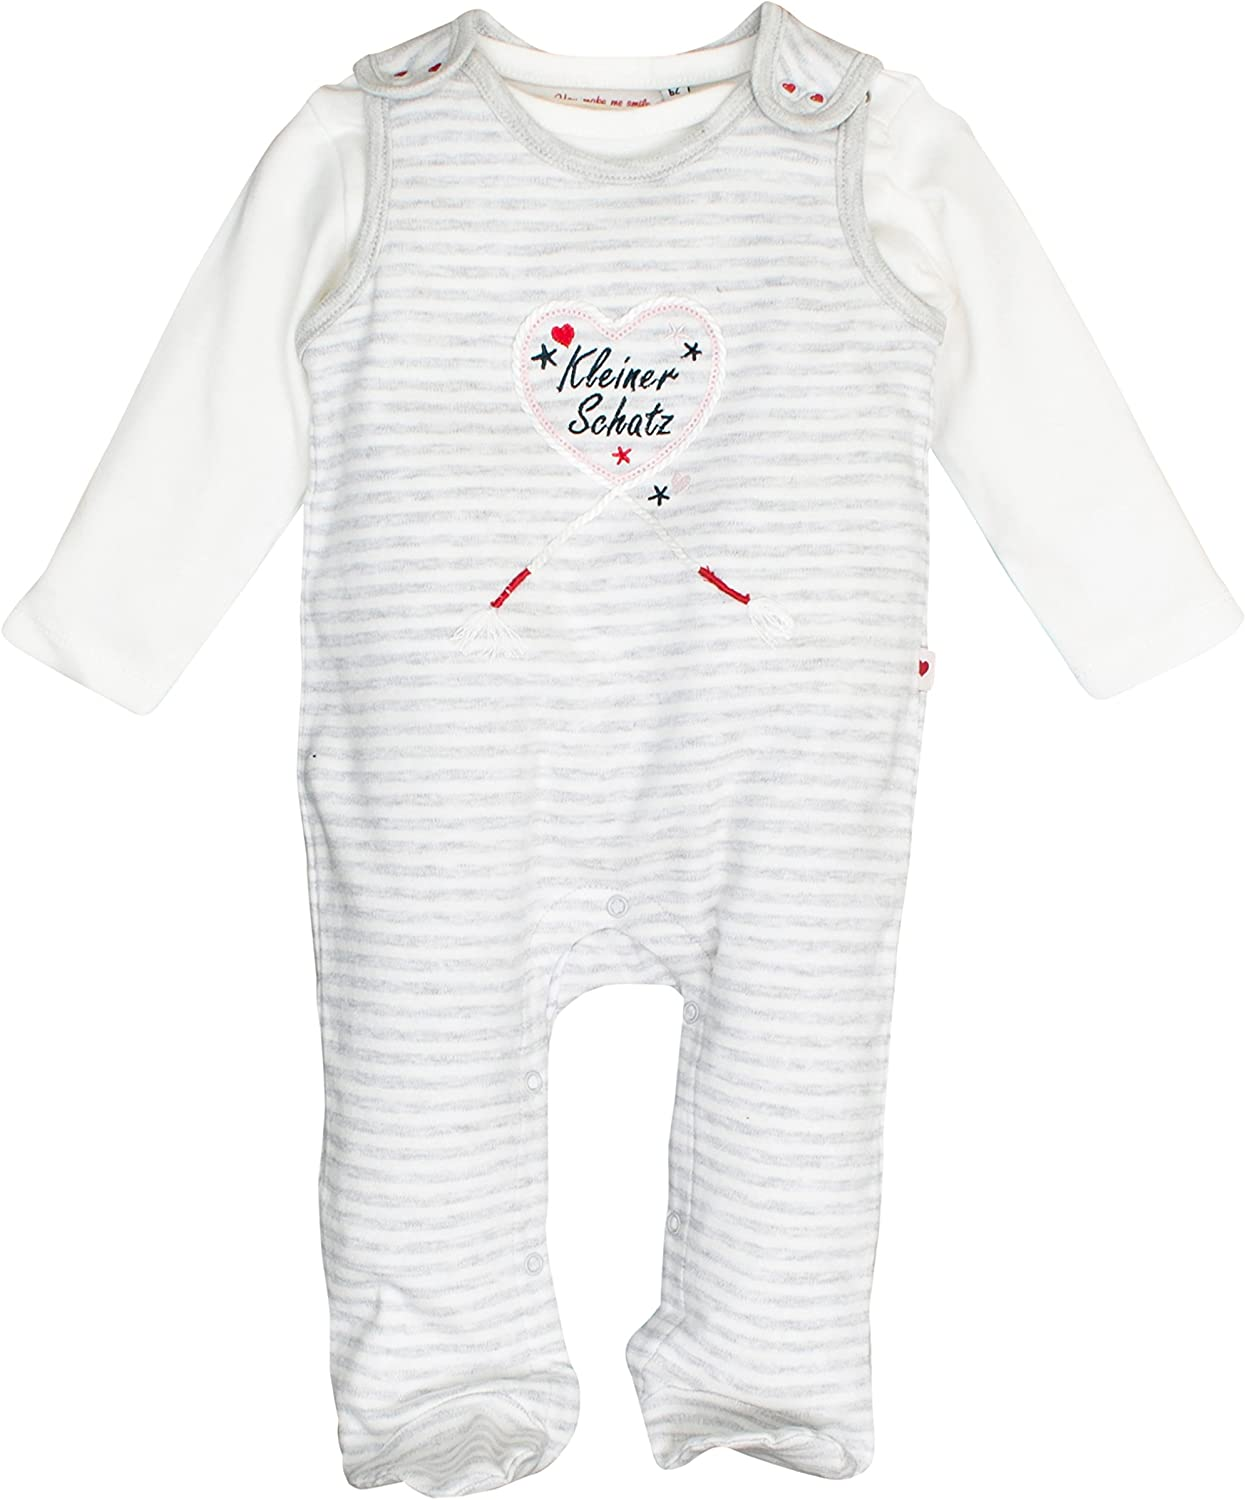 SALT AND PEPPER Baby-M/ädchen Nb Playsuit Schatz Stripe Strampler